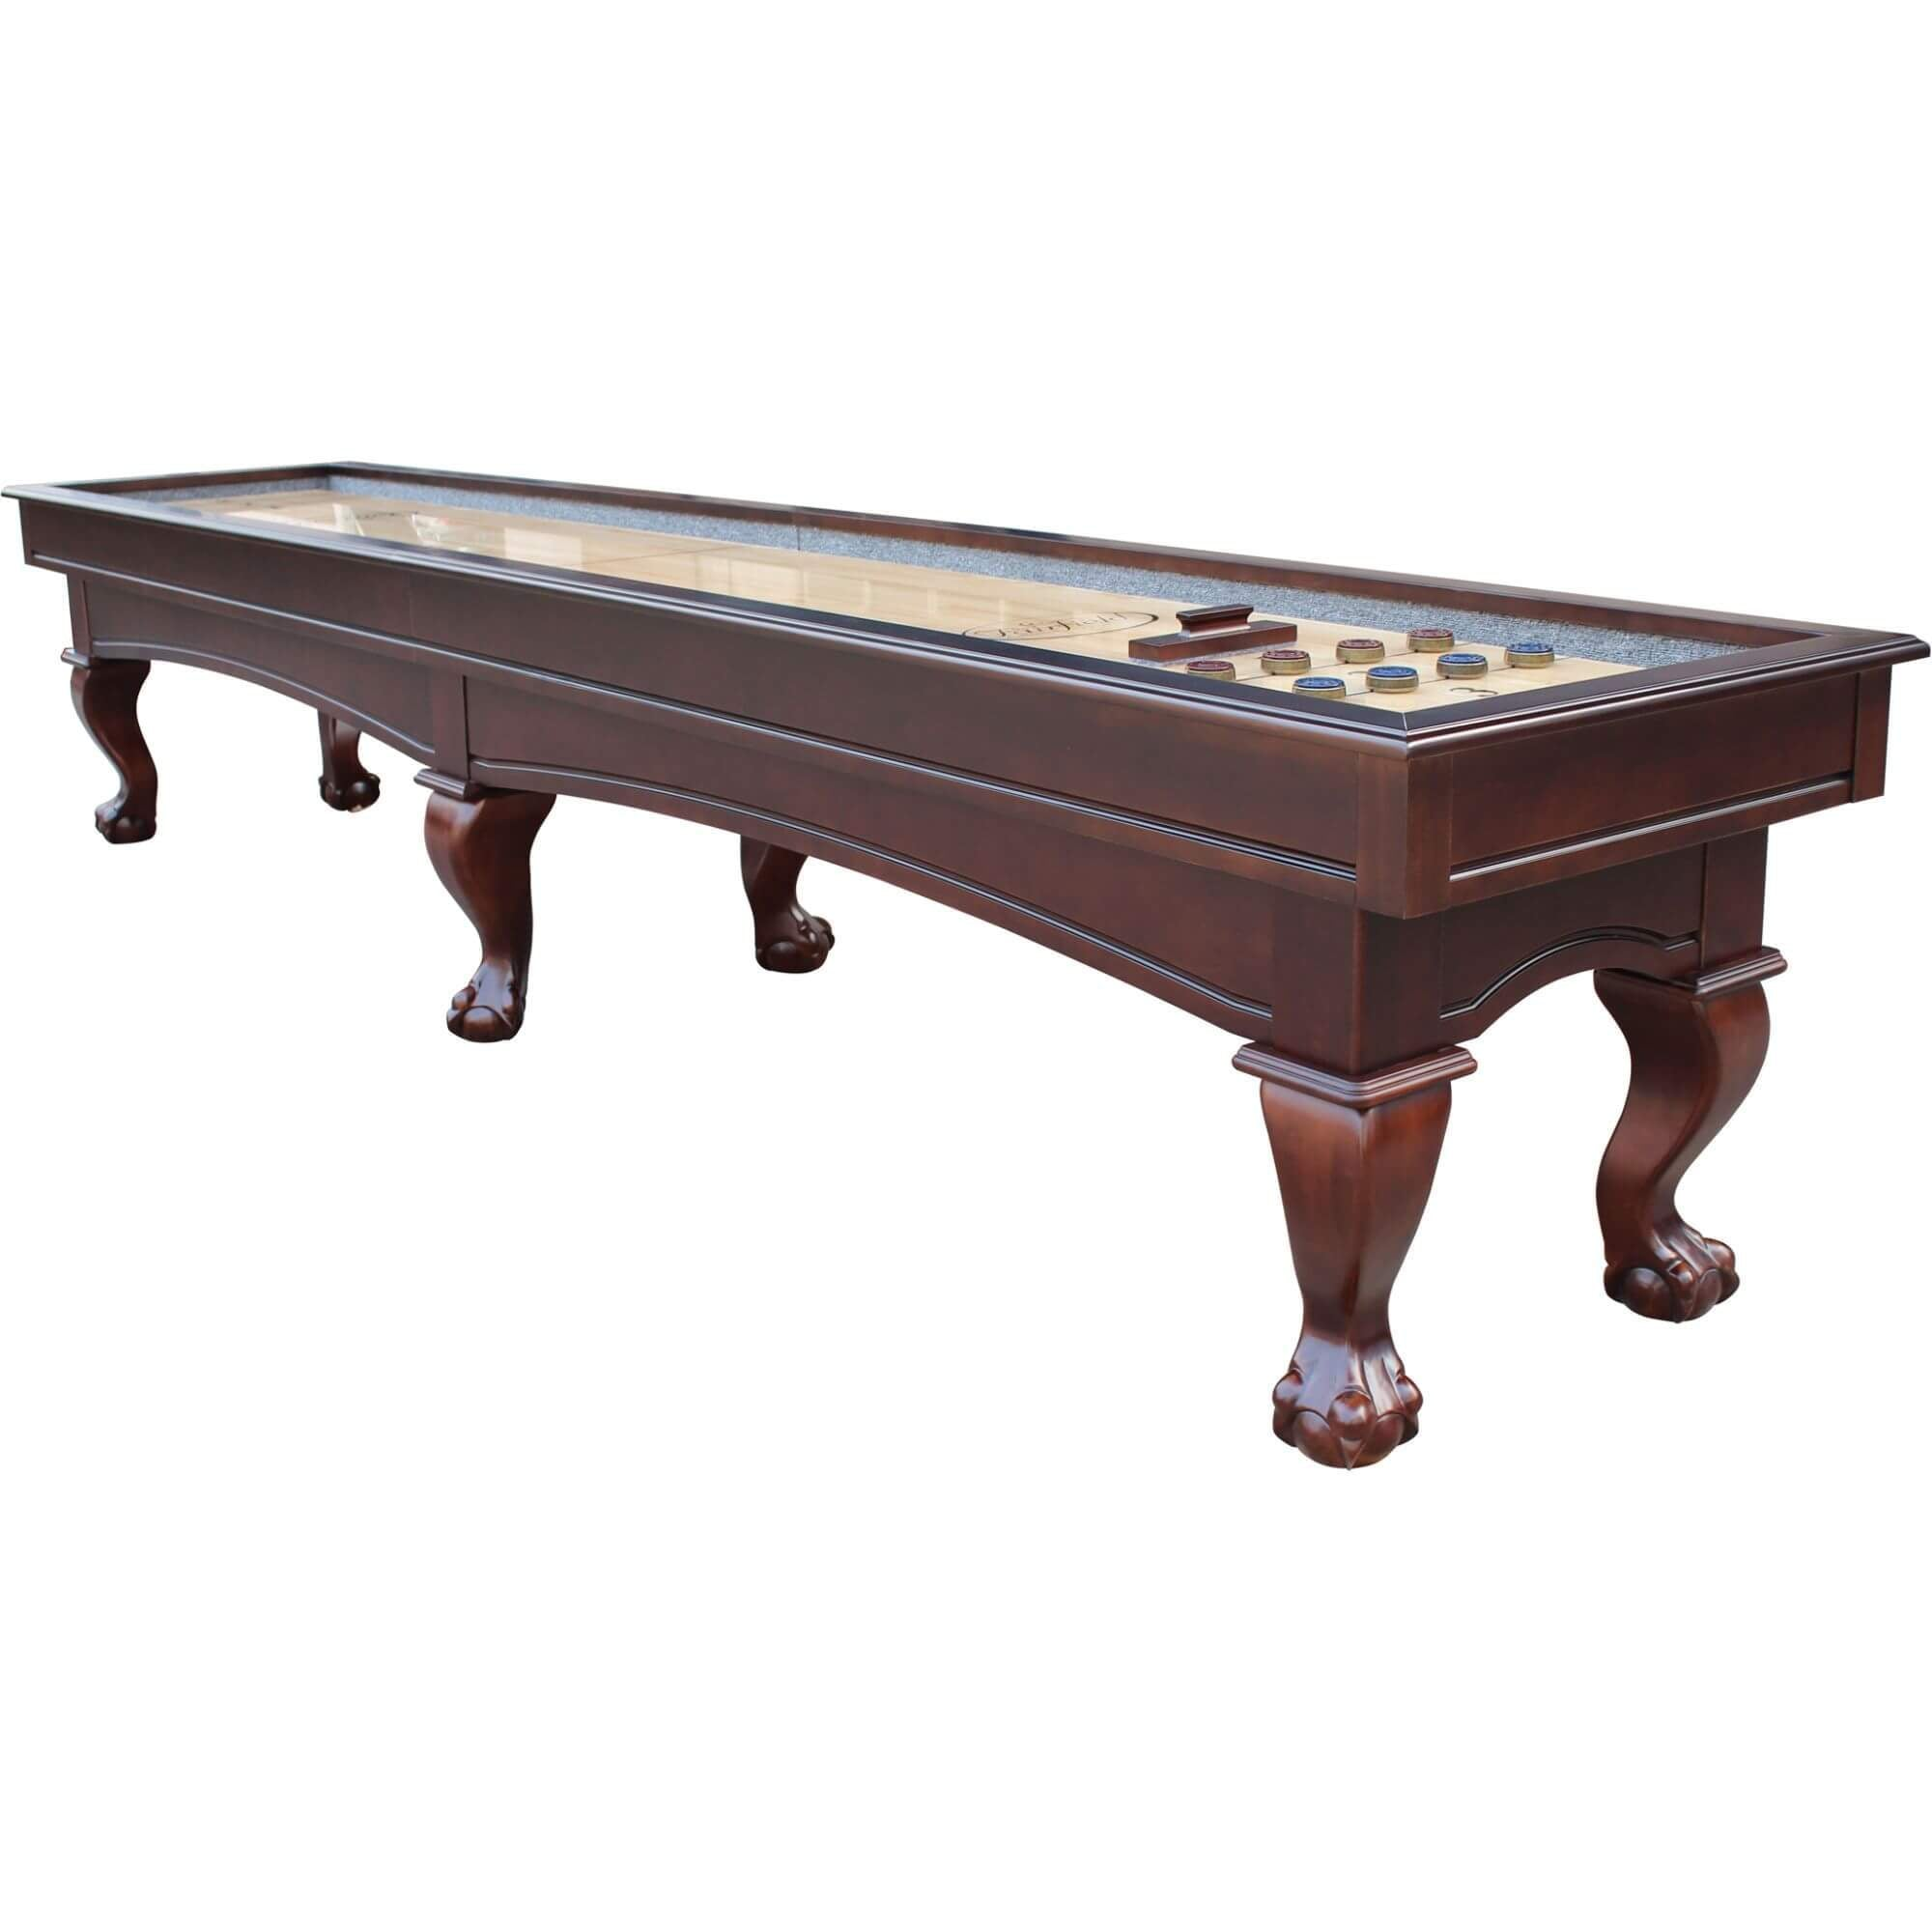 Playcraft Charles River Pro-Series Shuffleboard Table - Gaming Blaze